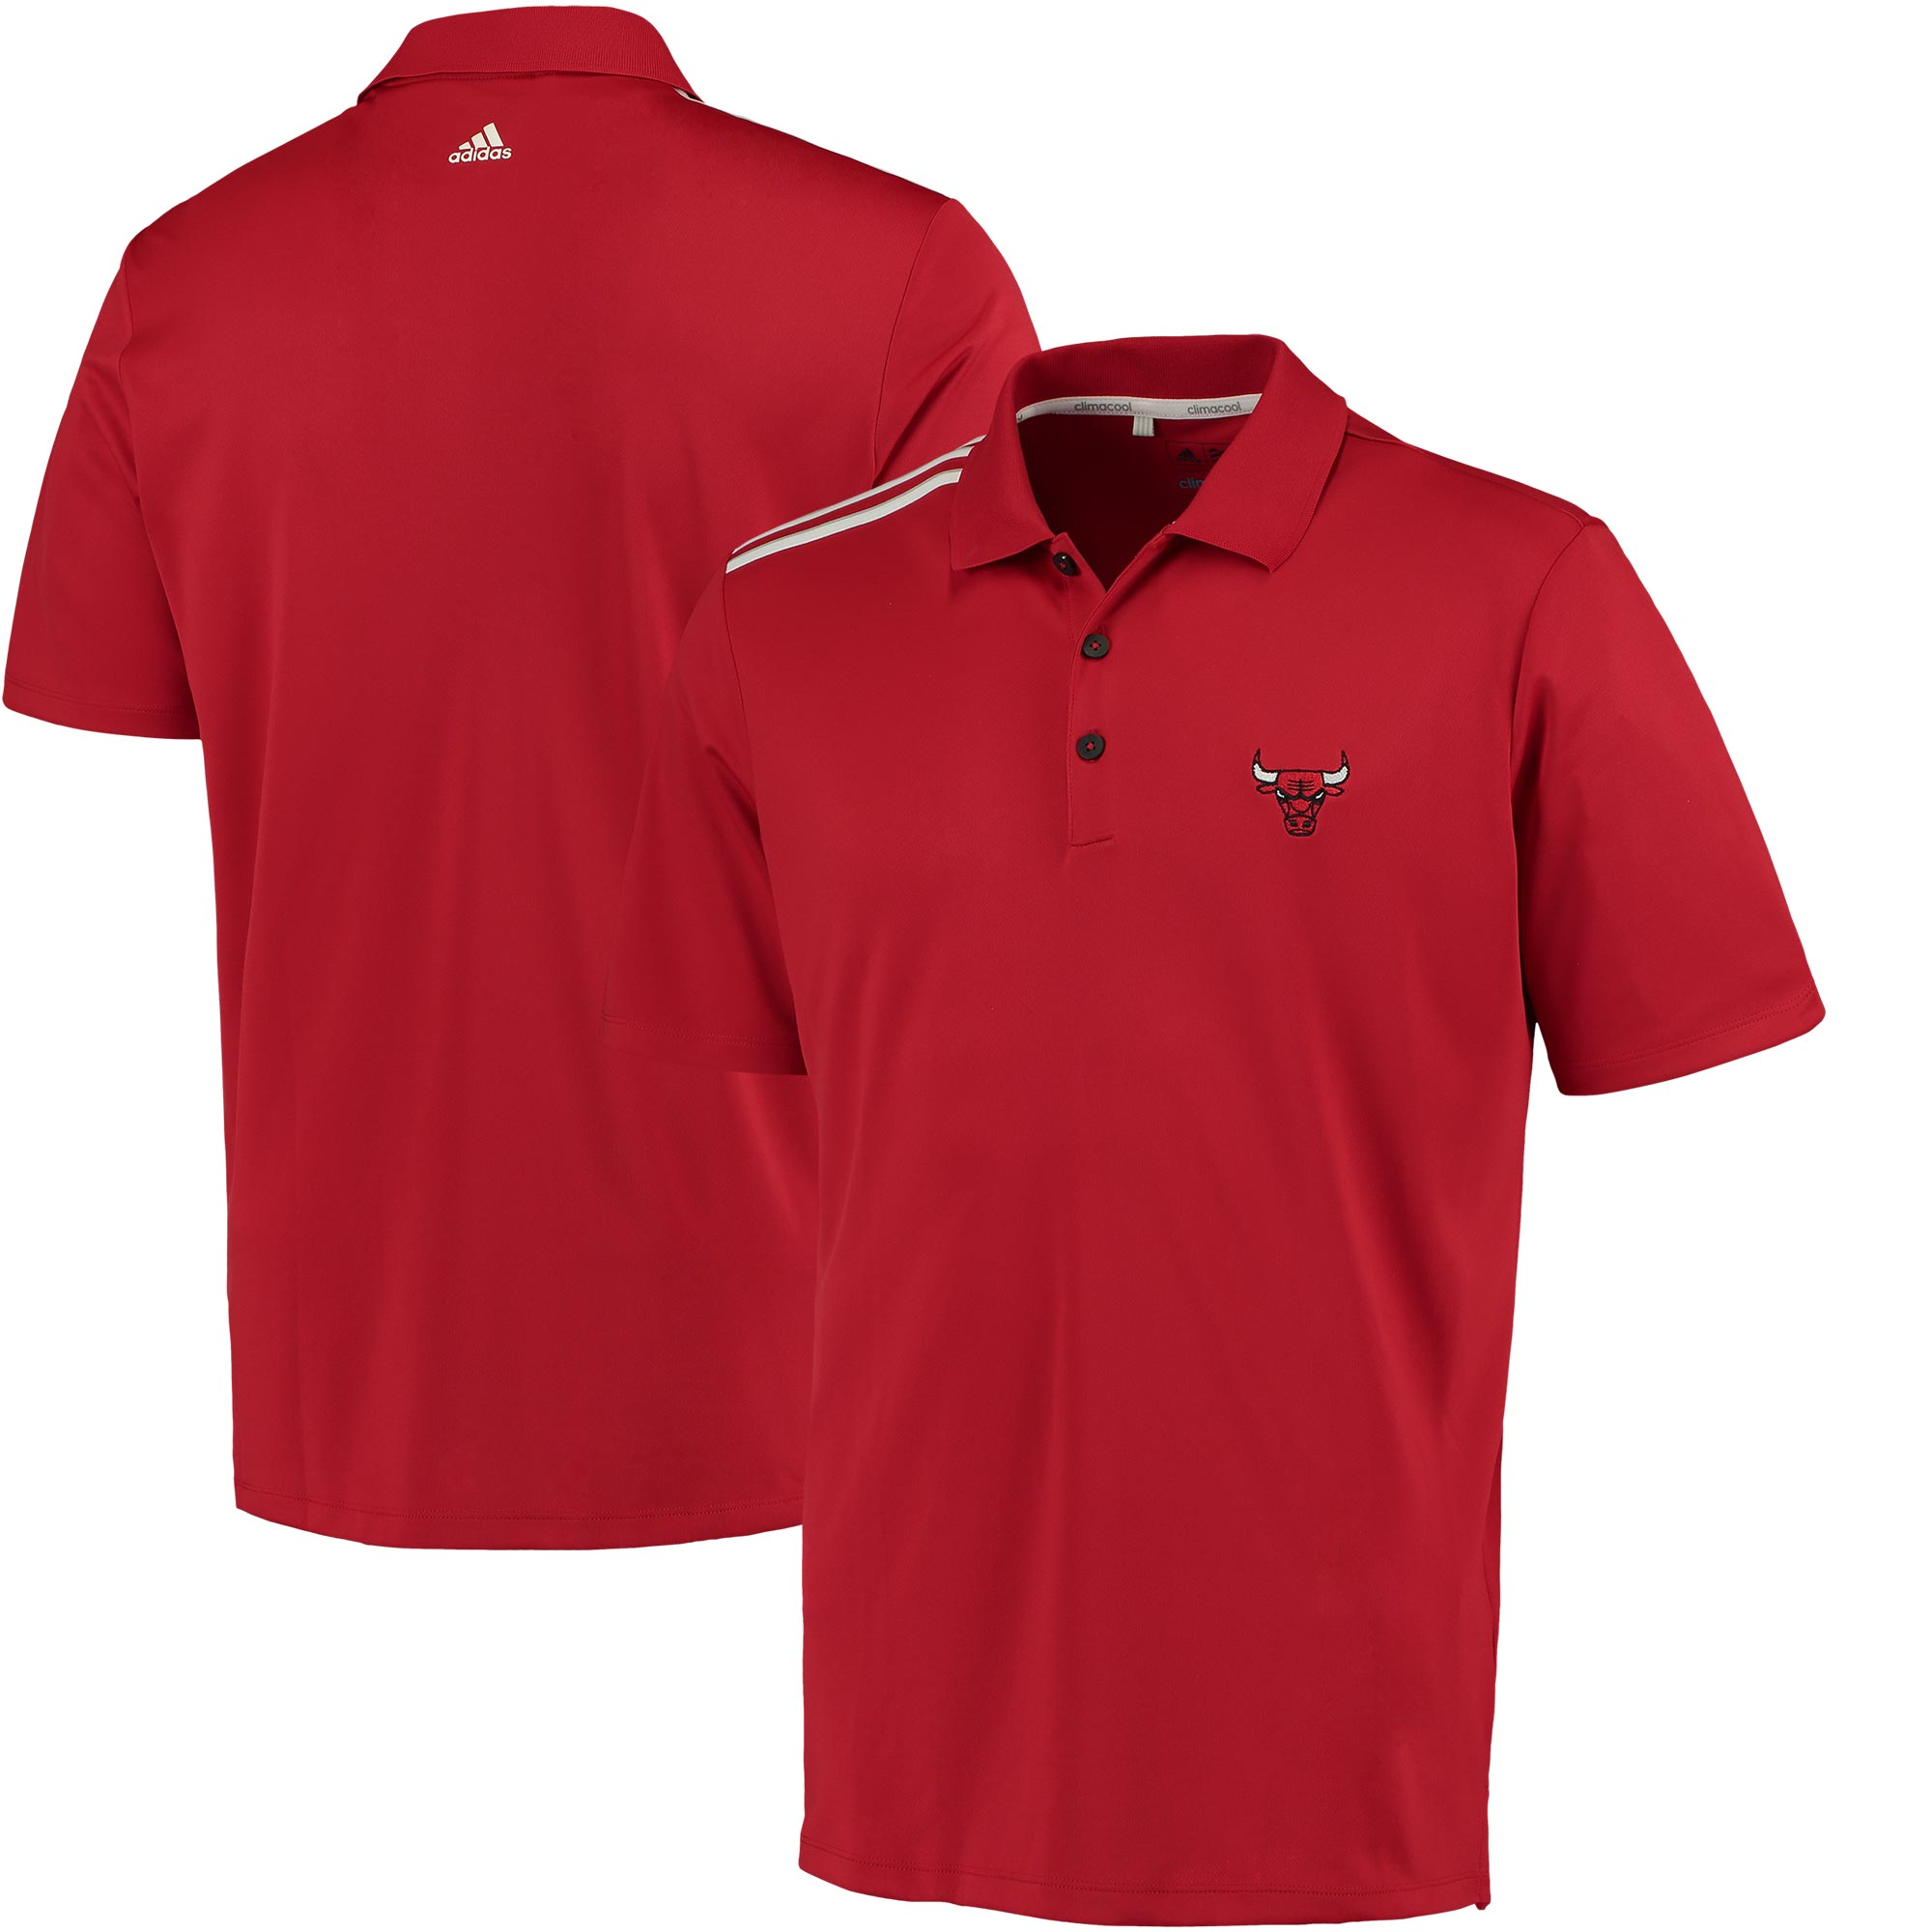 Chicago Bulls adidas 3-Stripes climacool Polo - Red